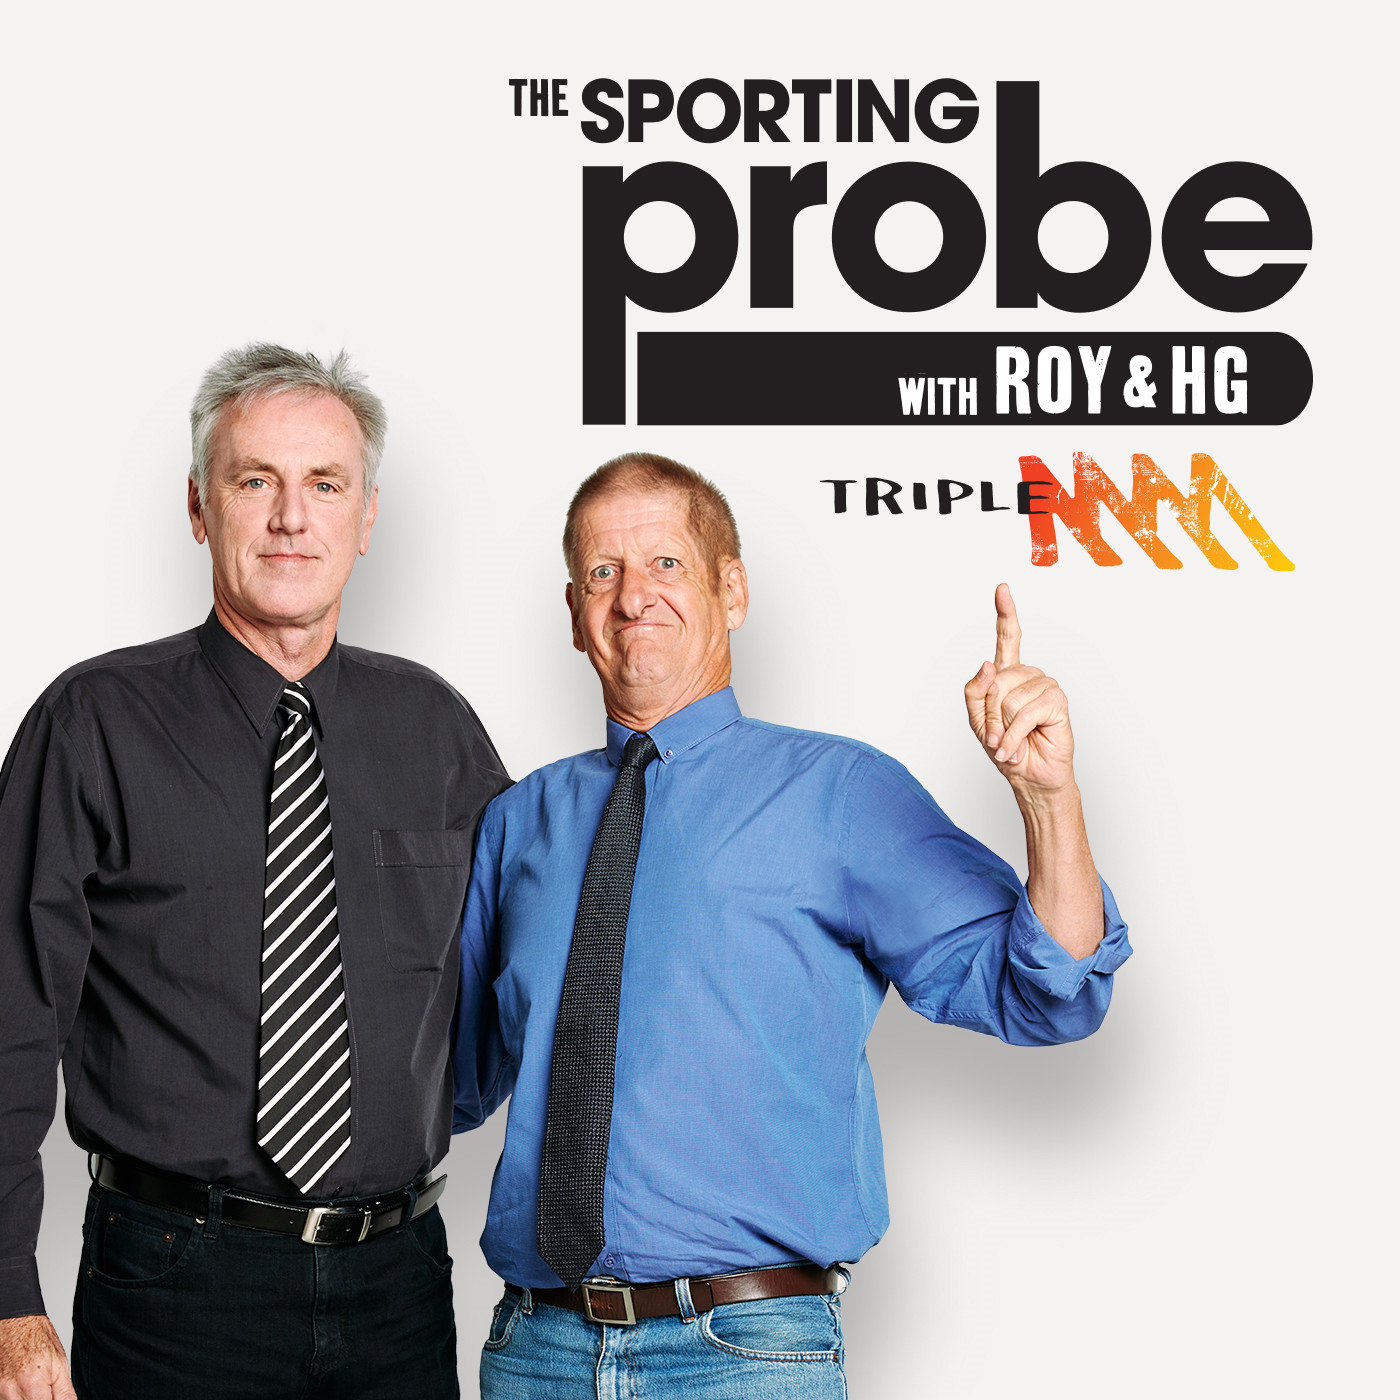 The Sporting Probe with Roy & HG